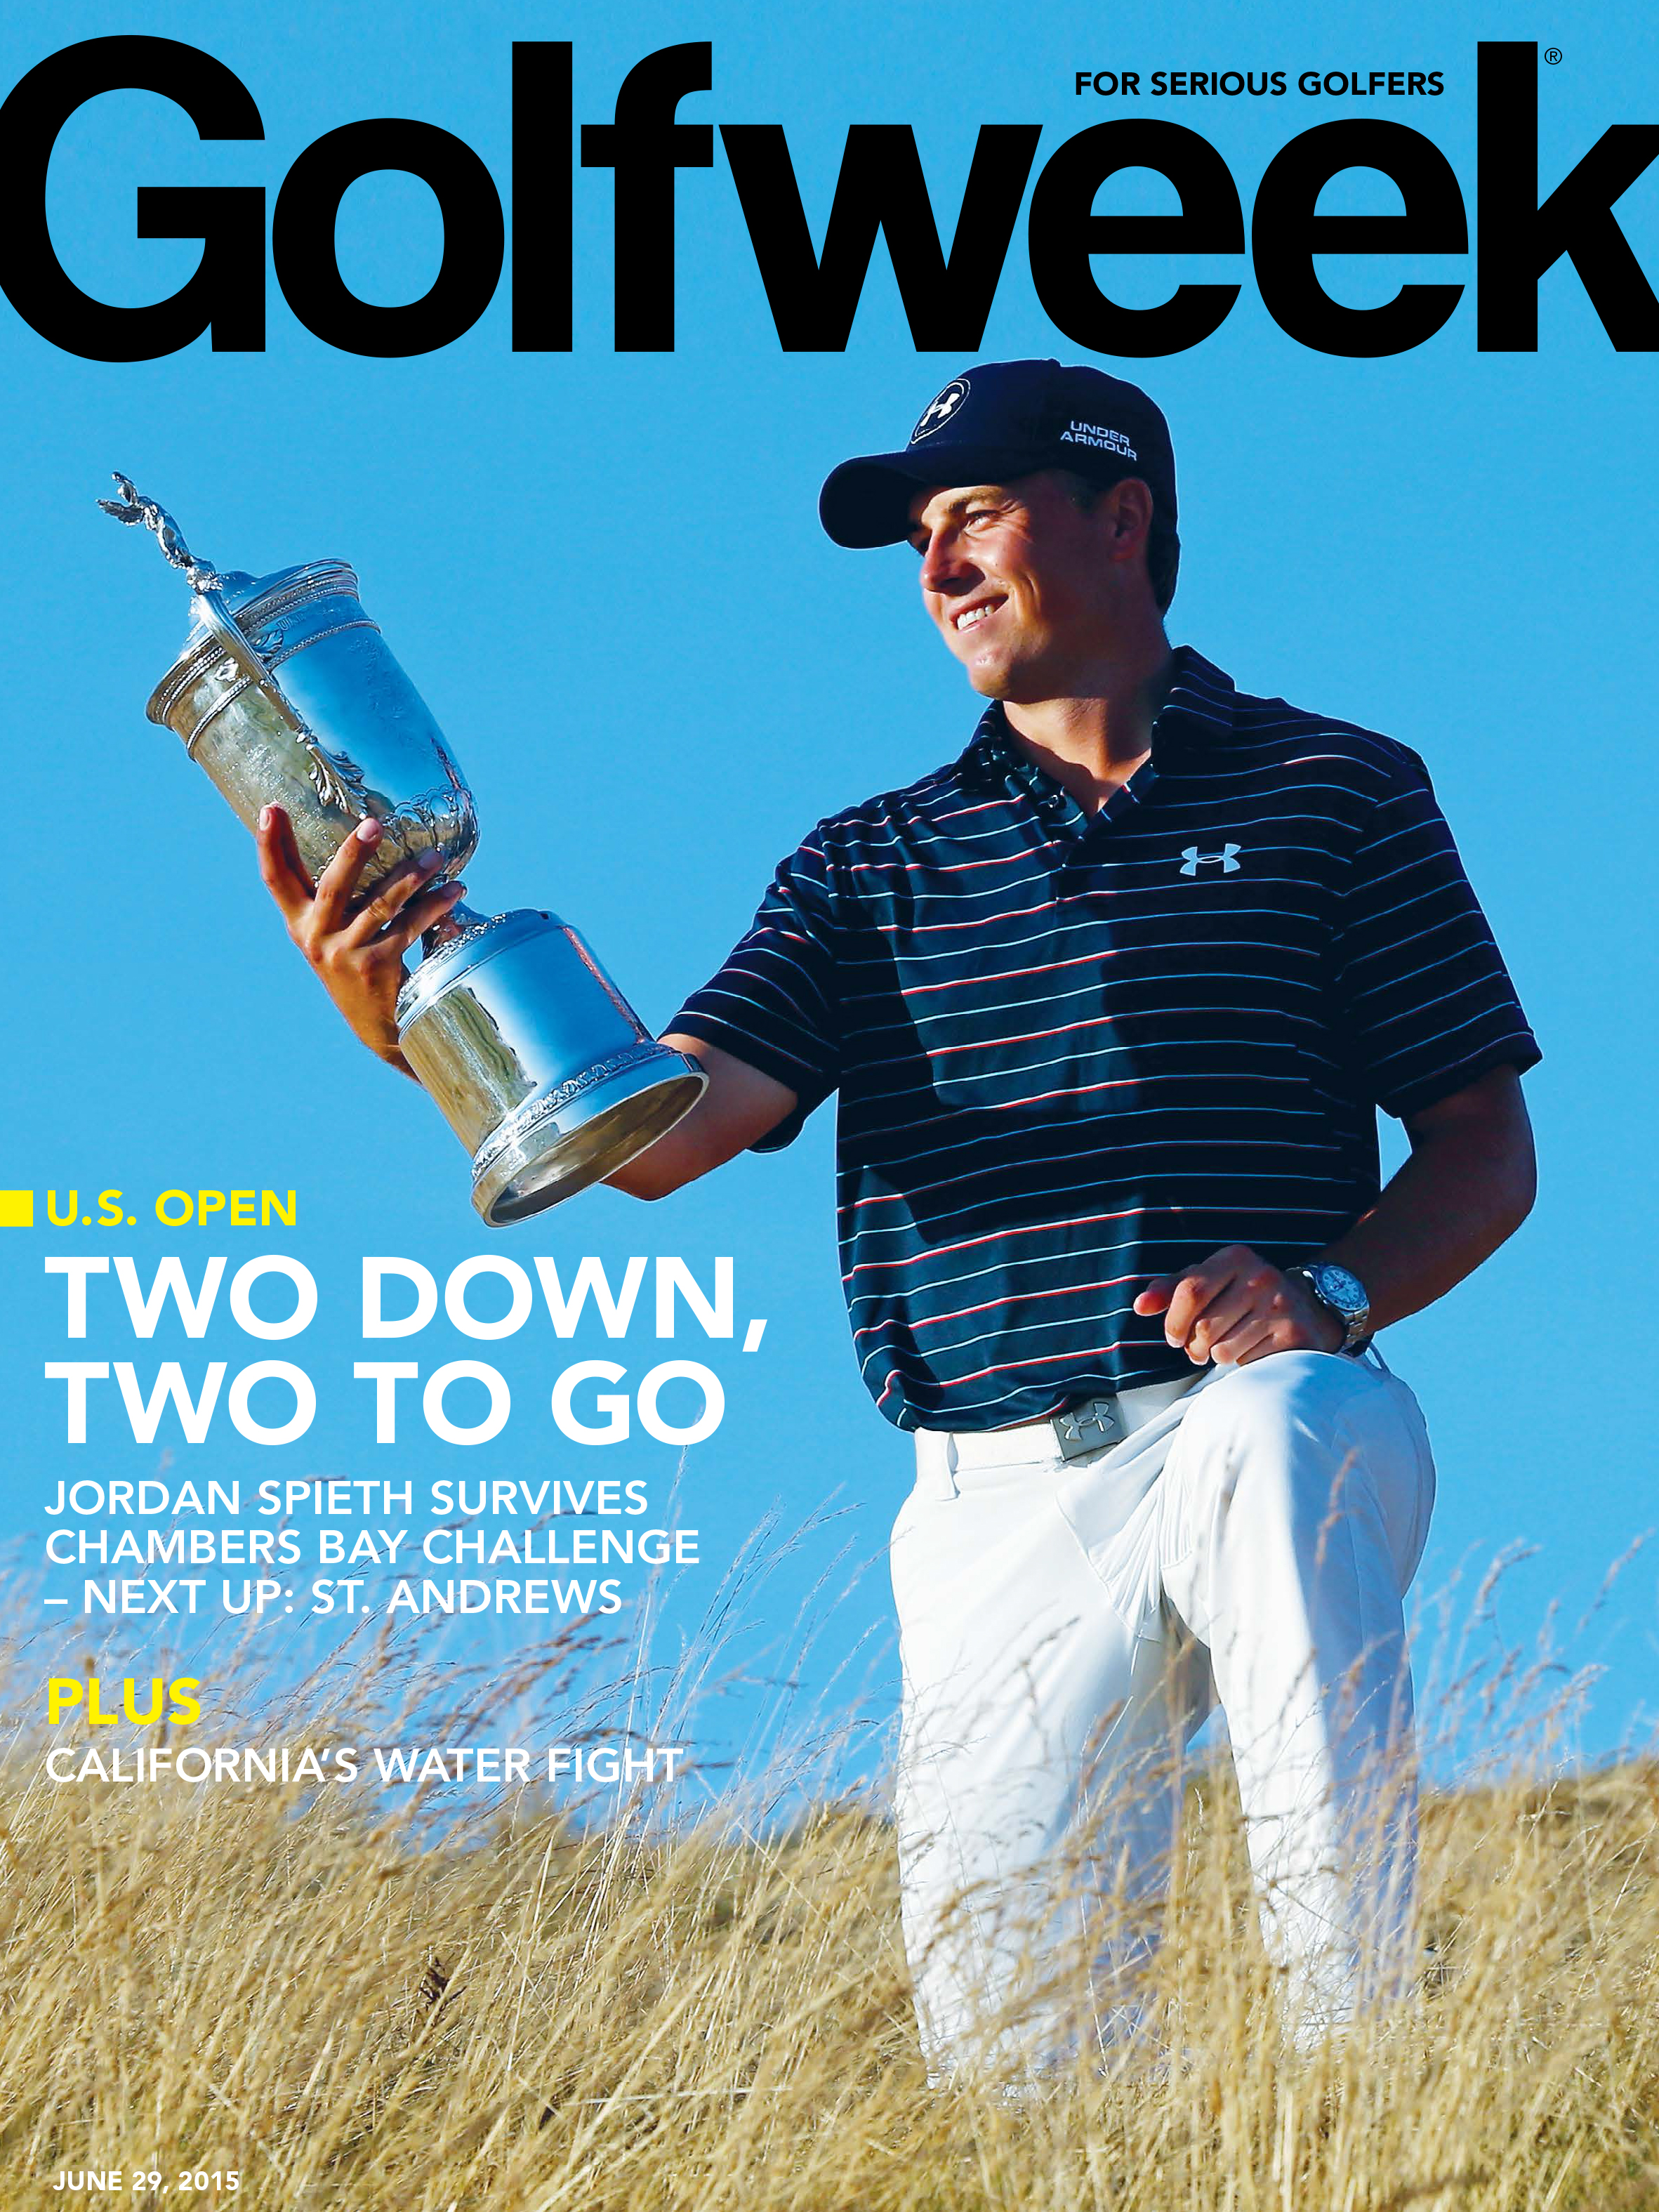 In this issue: June 29, 2015